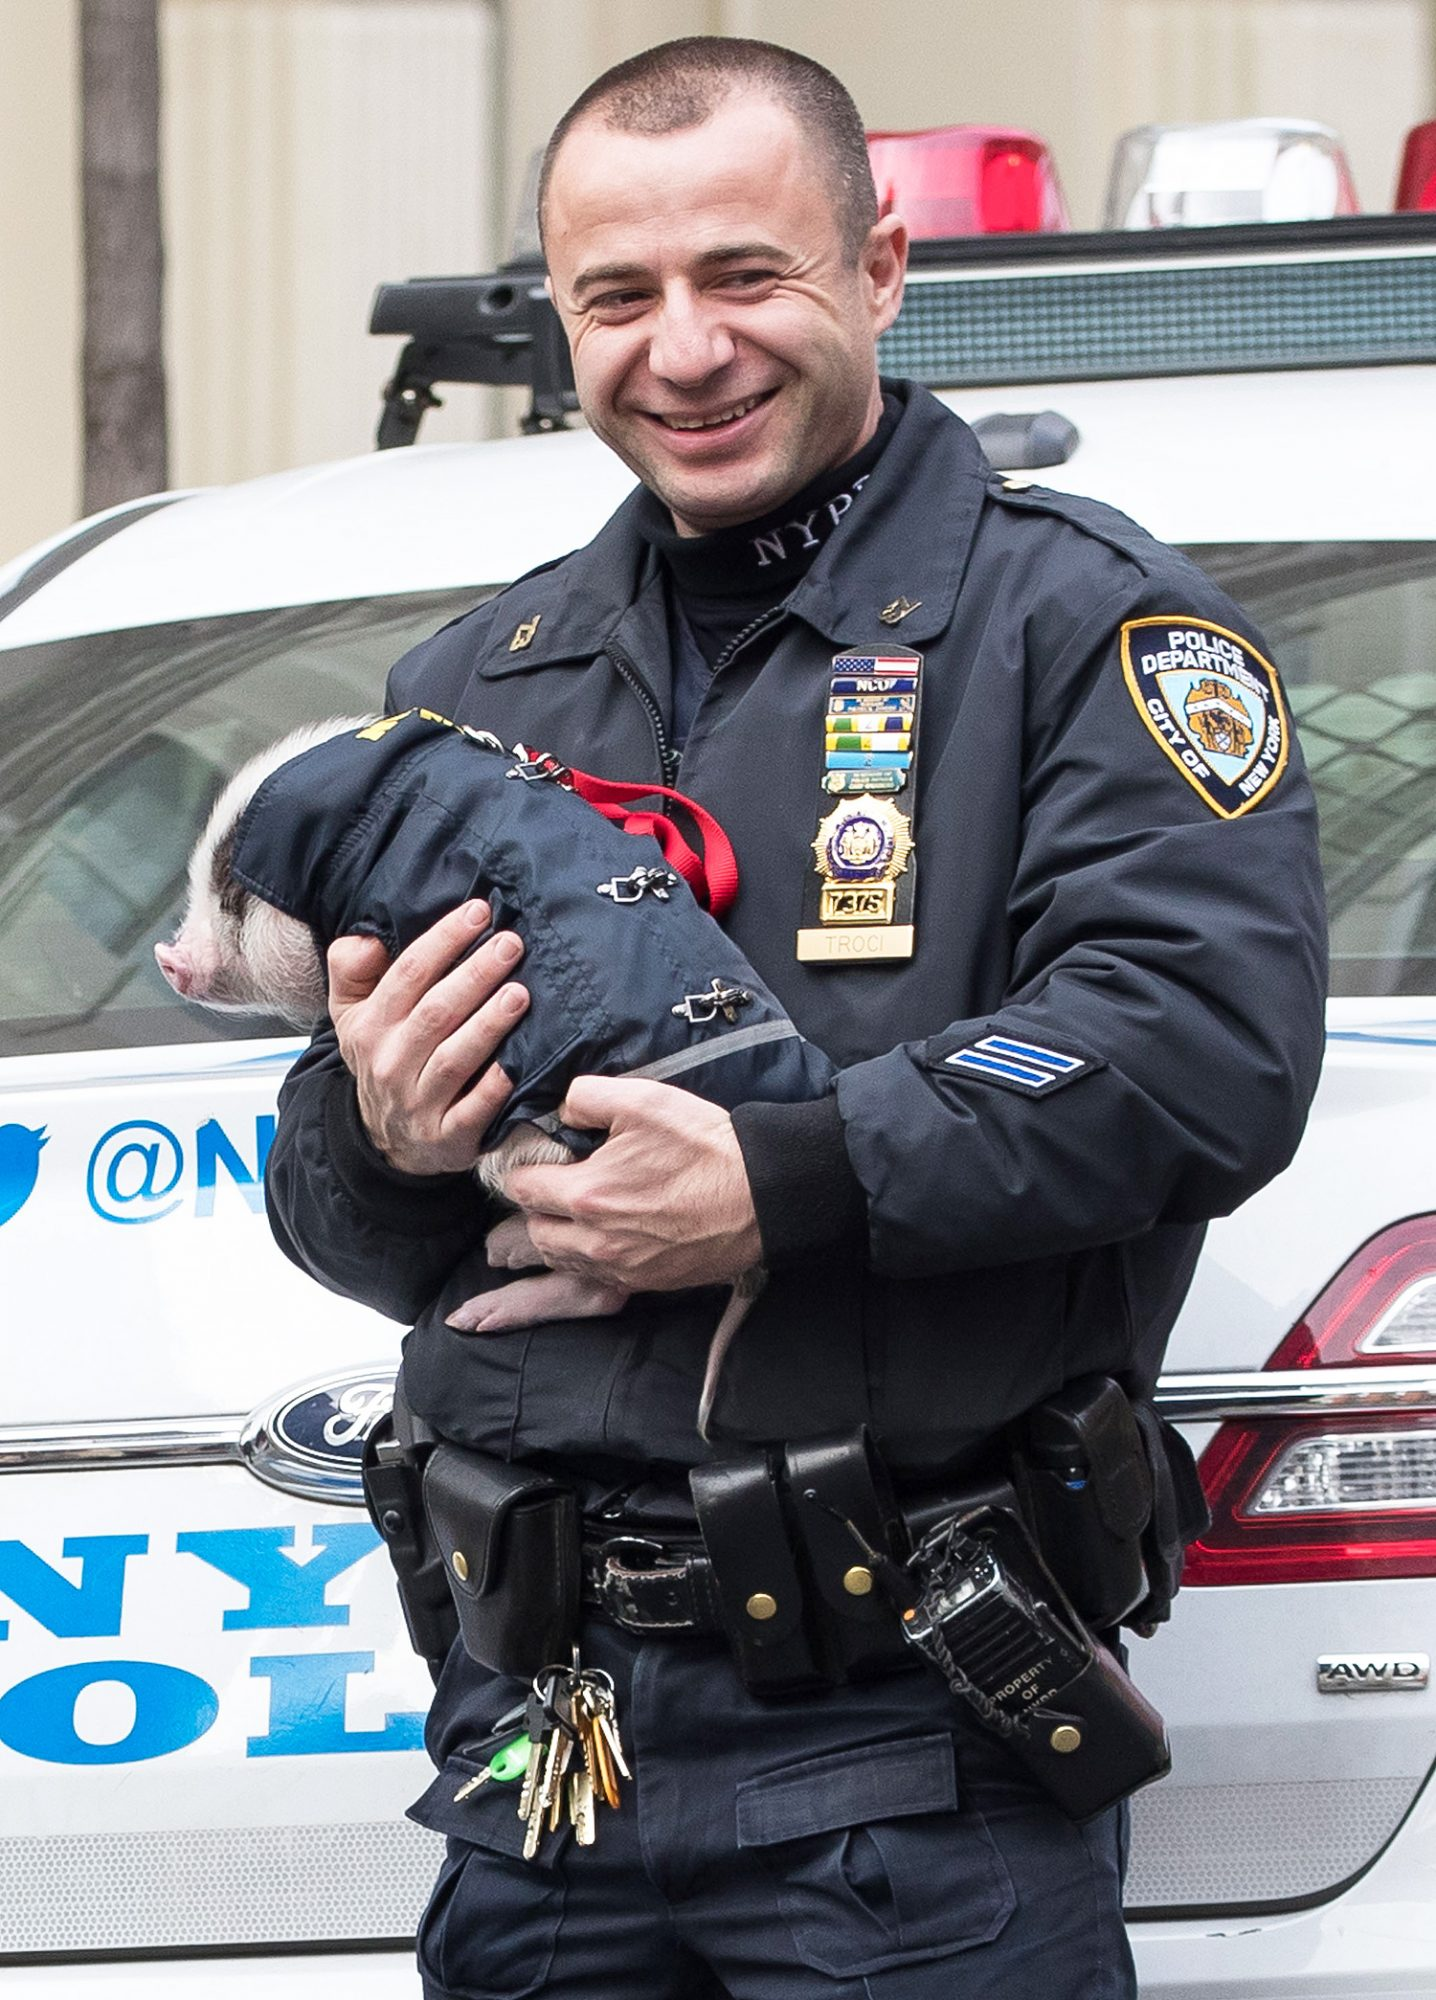 Police officers seen posing for a photo with little pig in Soho, New York.